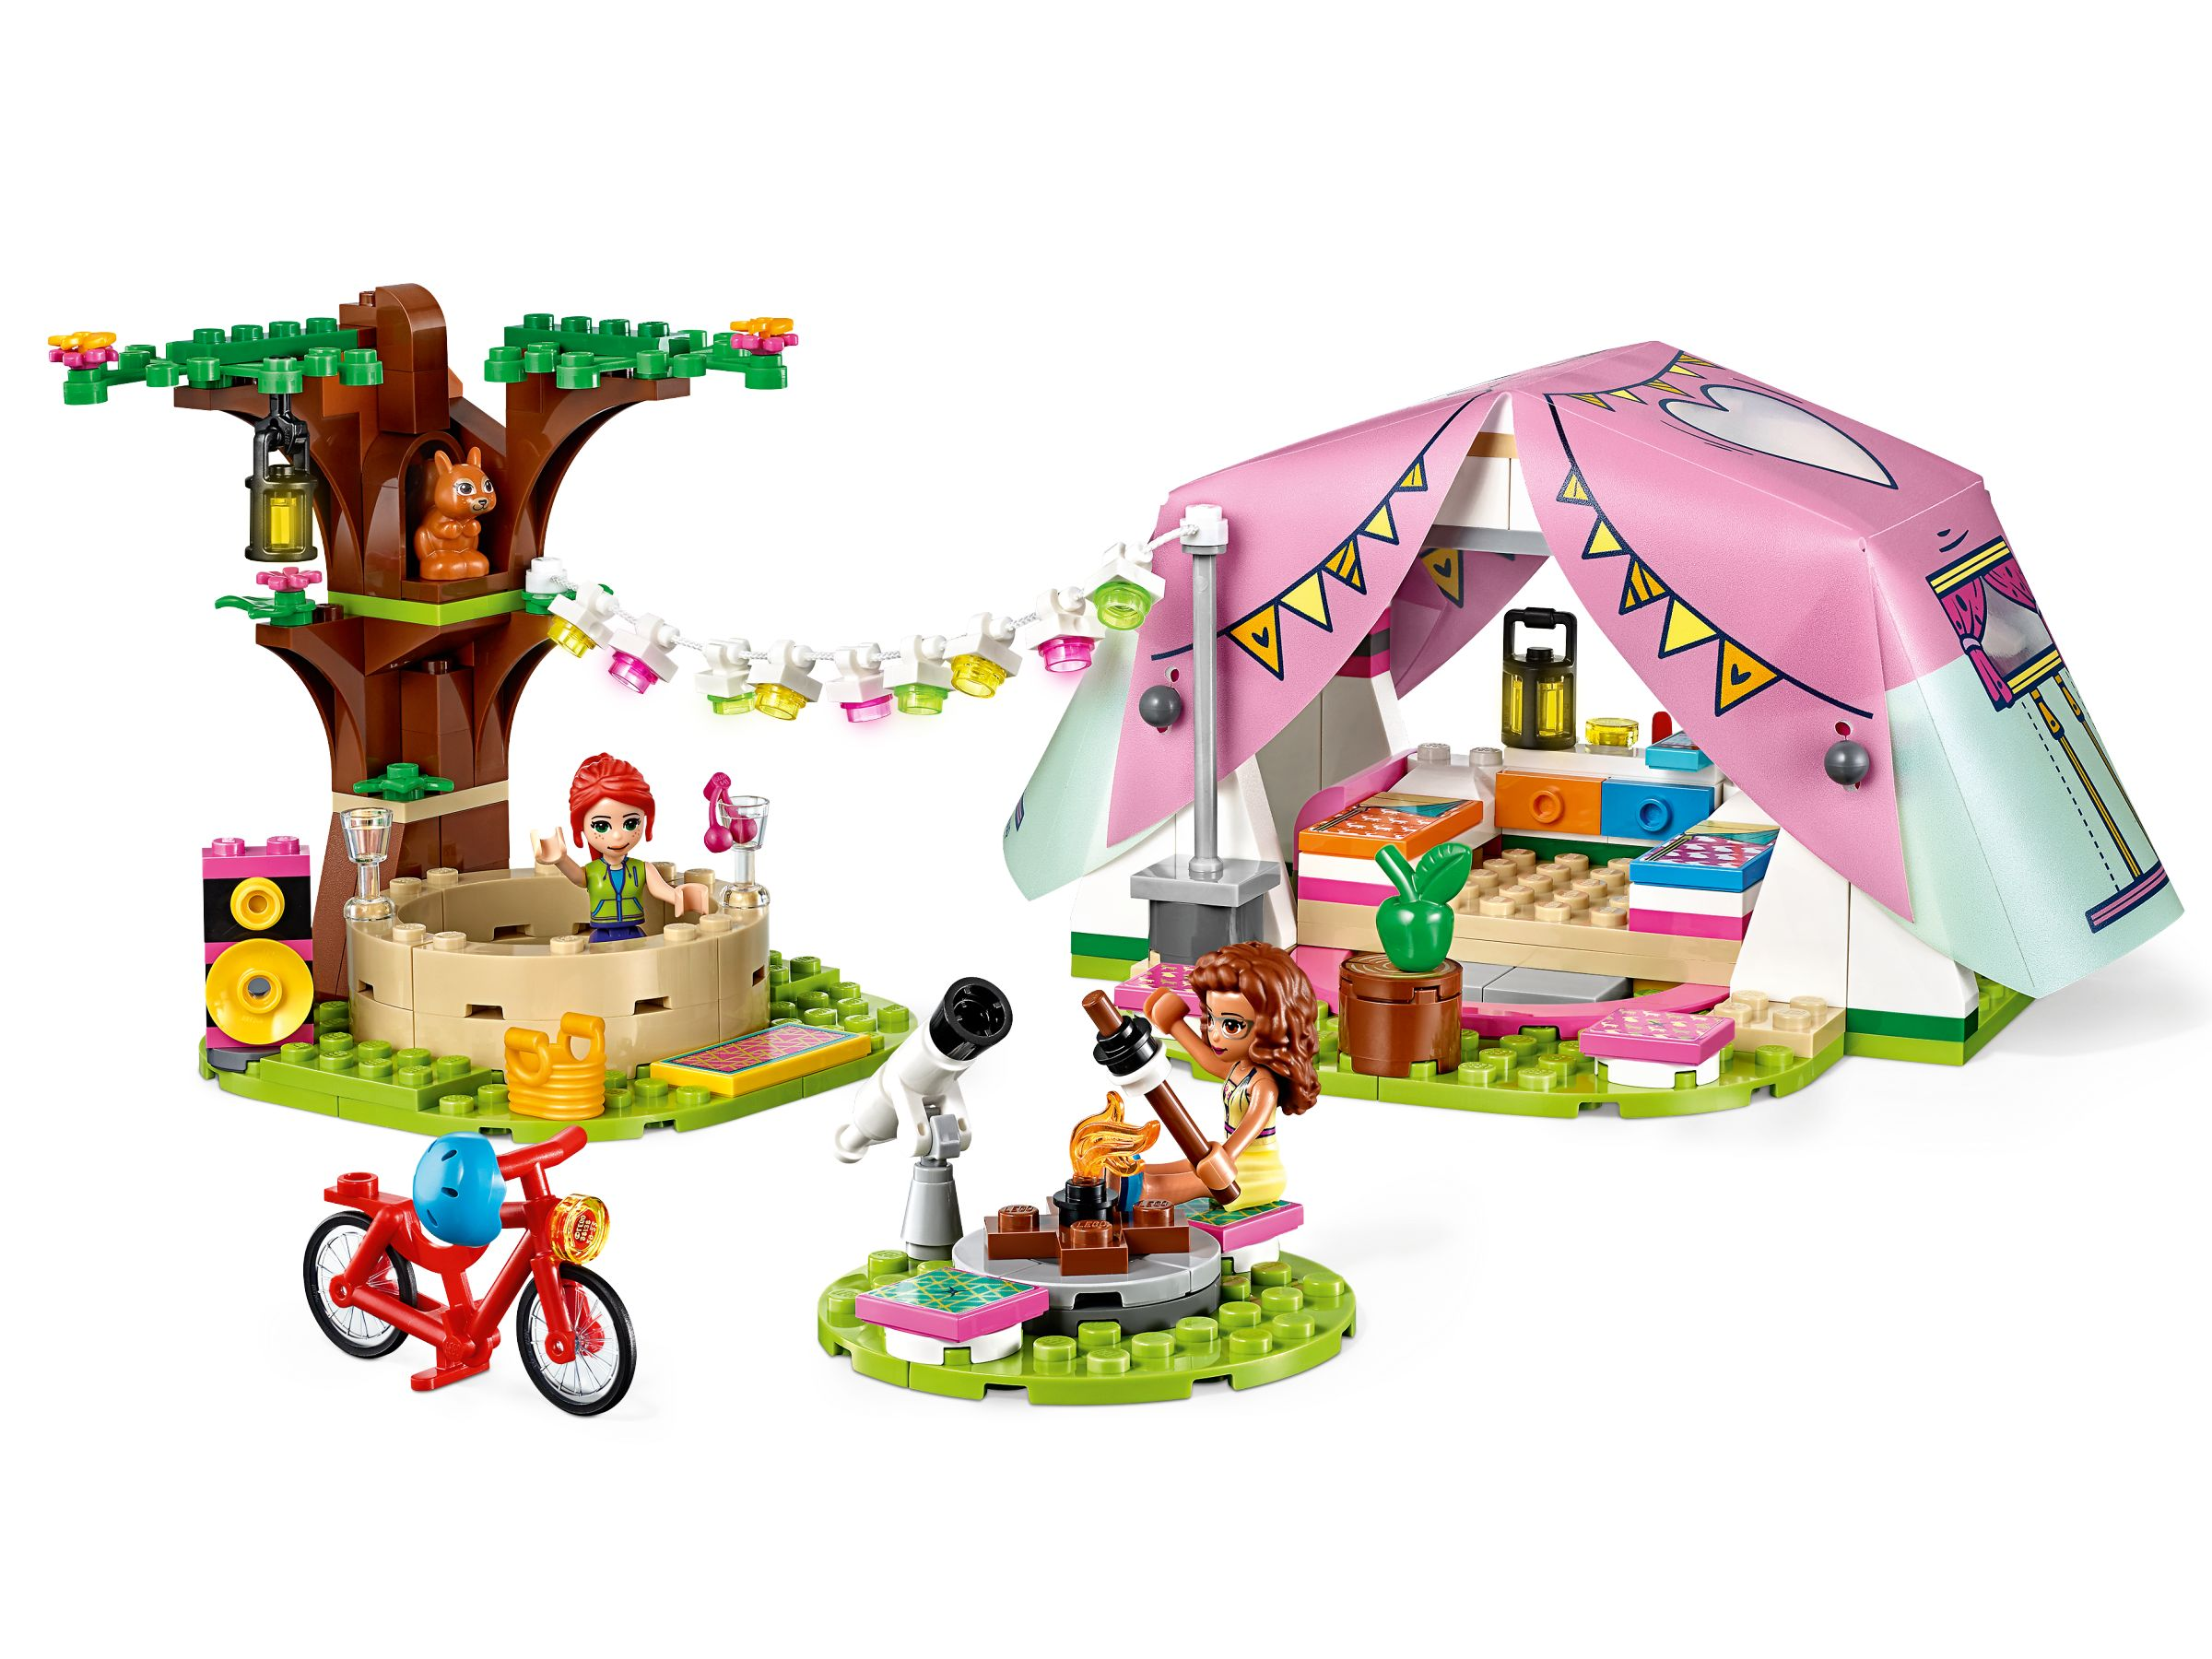 LEGO Friends 41392 Camping in Heartlake City LEGO_41392_alt2.jpg